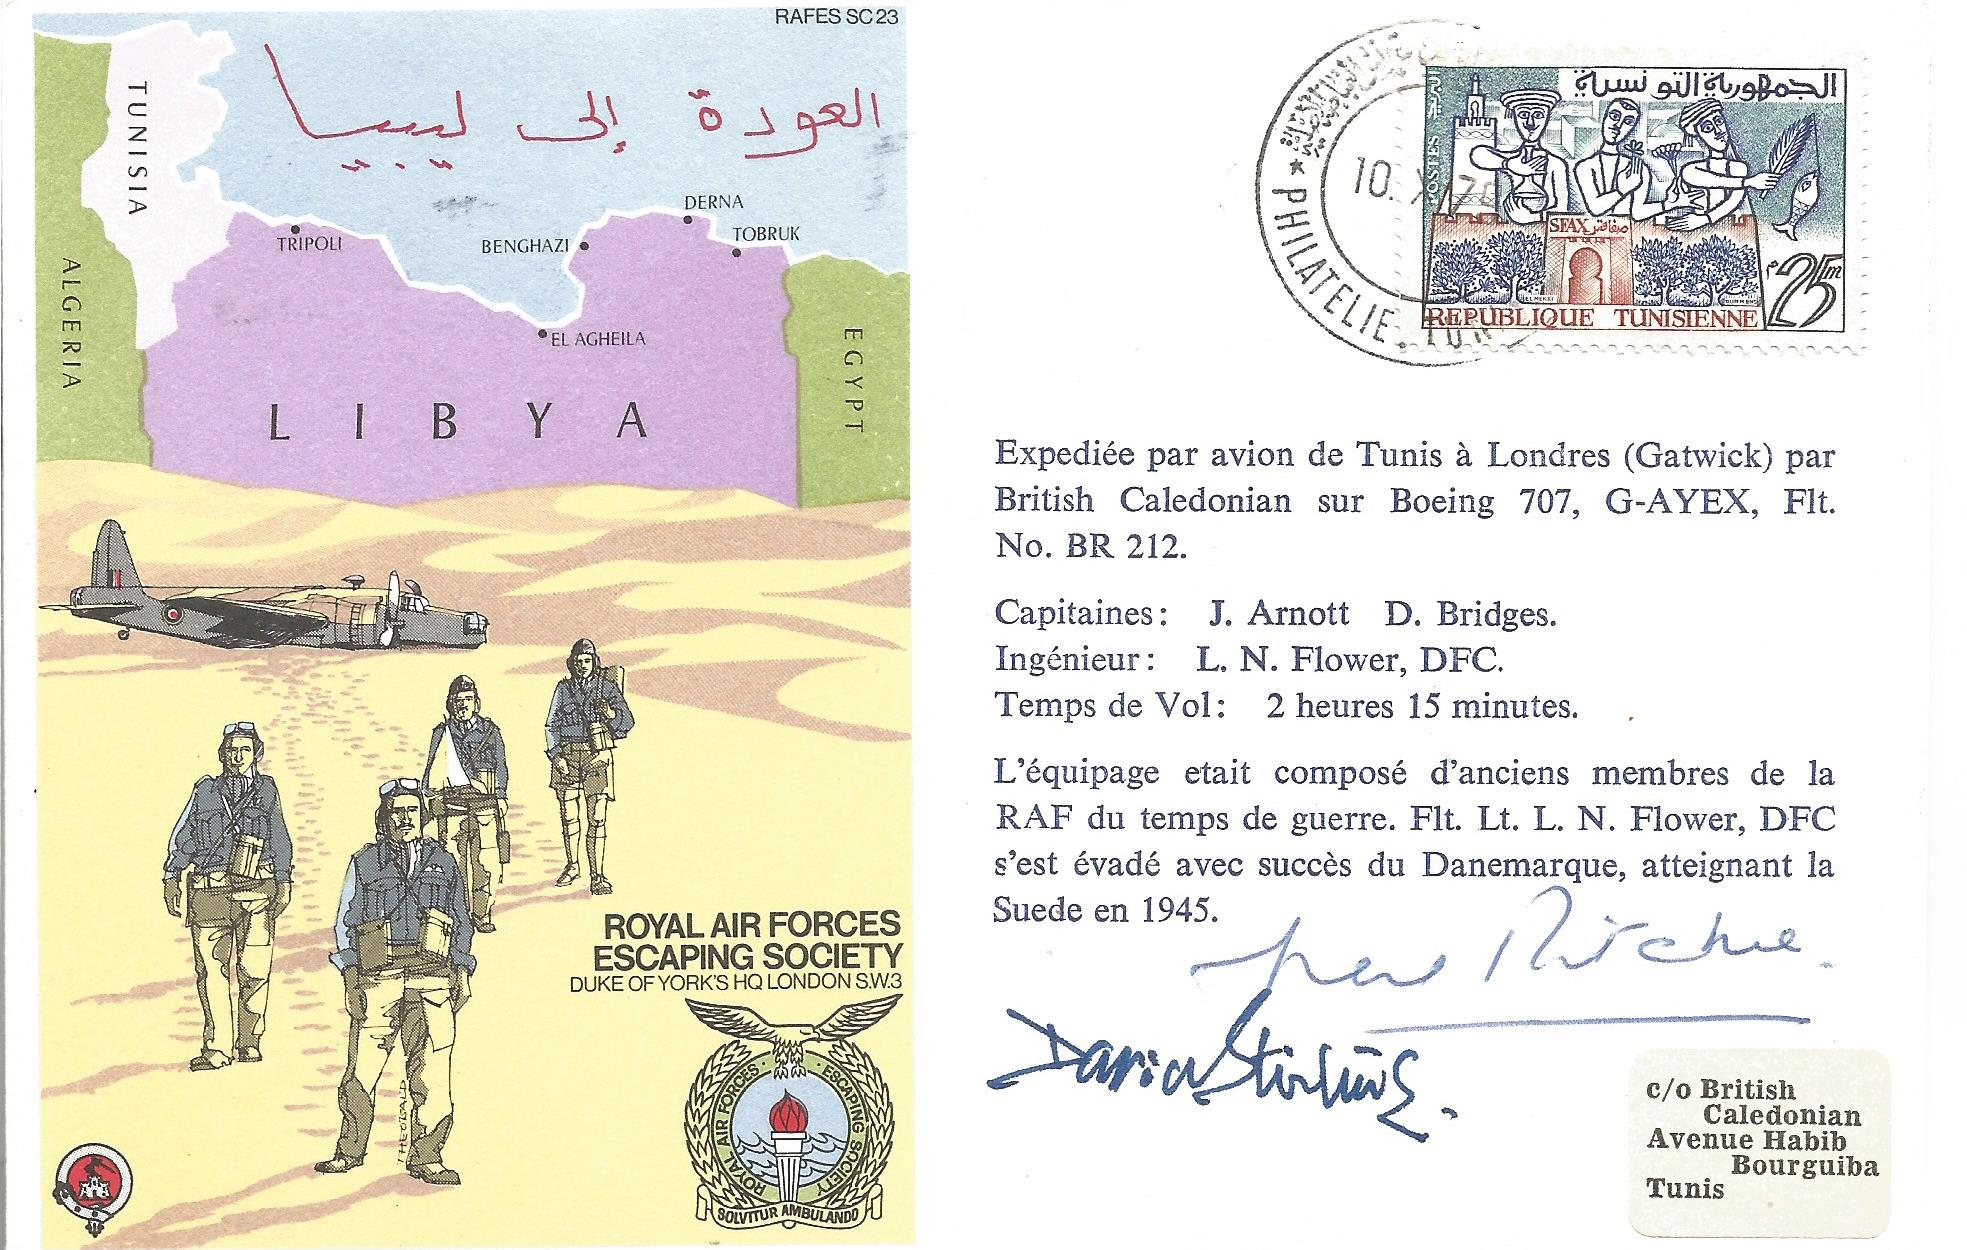 Lt Col A. D Stirling and Gen Sir Neil Mathew Ritchie signed Royal Air Force Escaping Society Libya